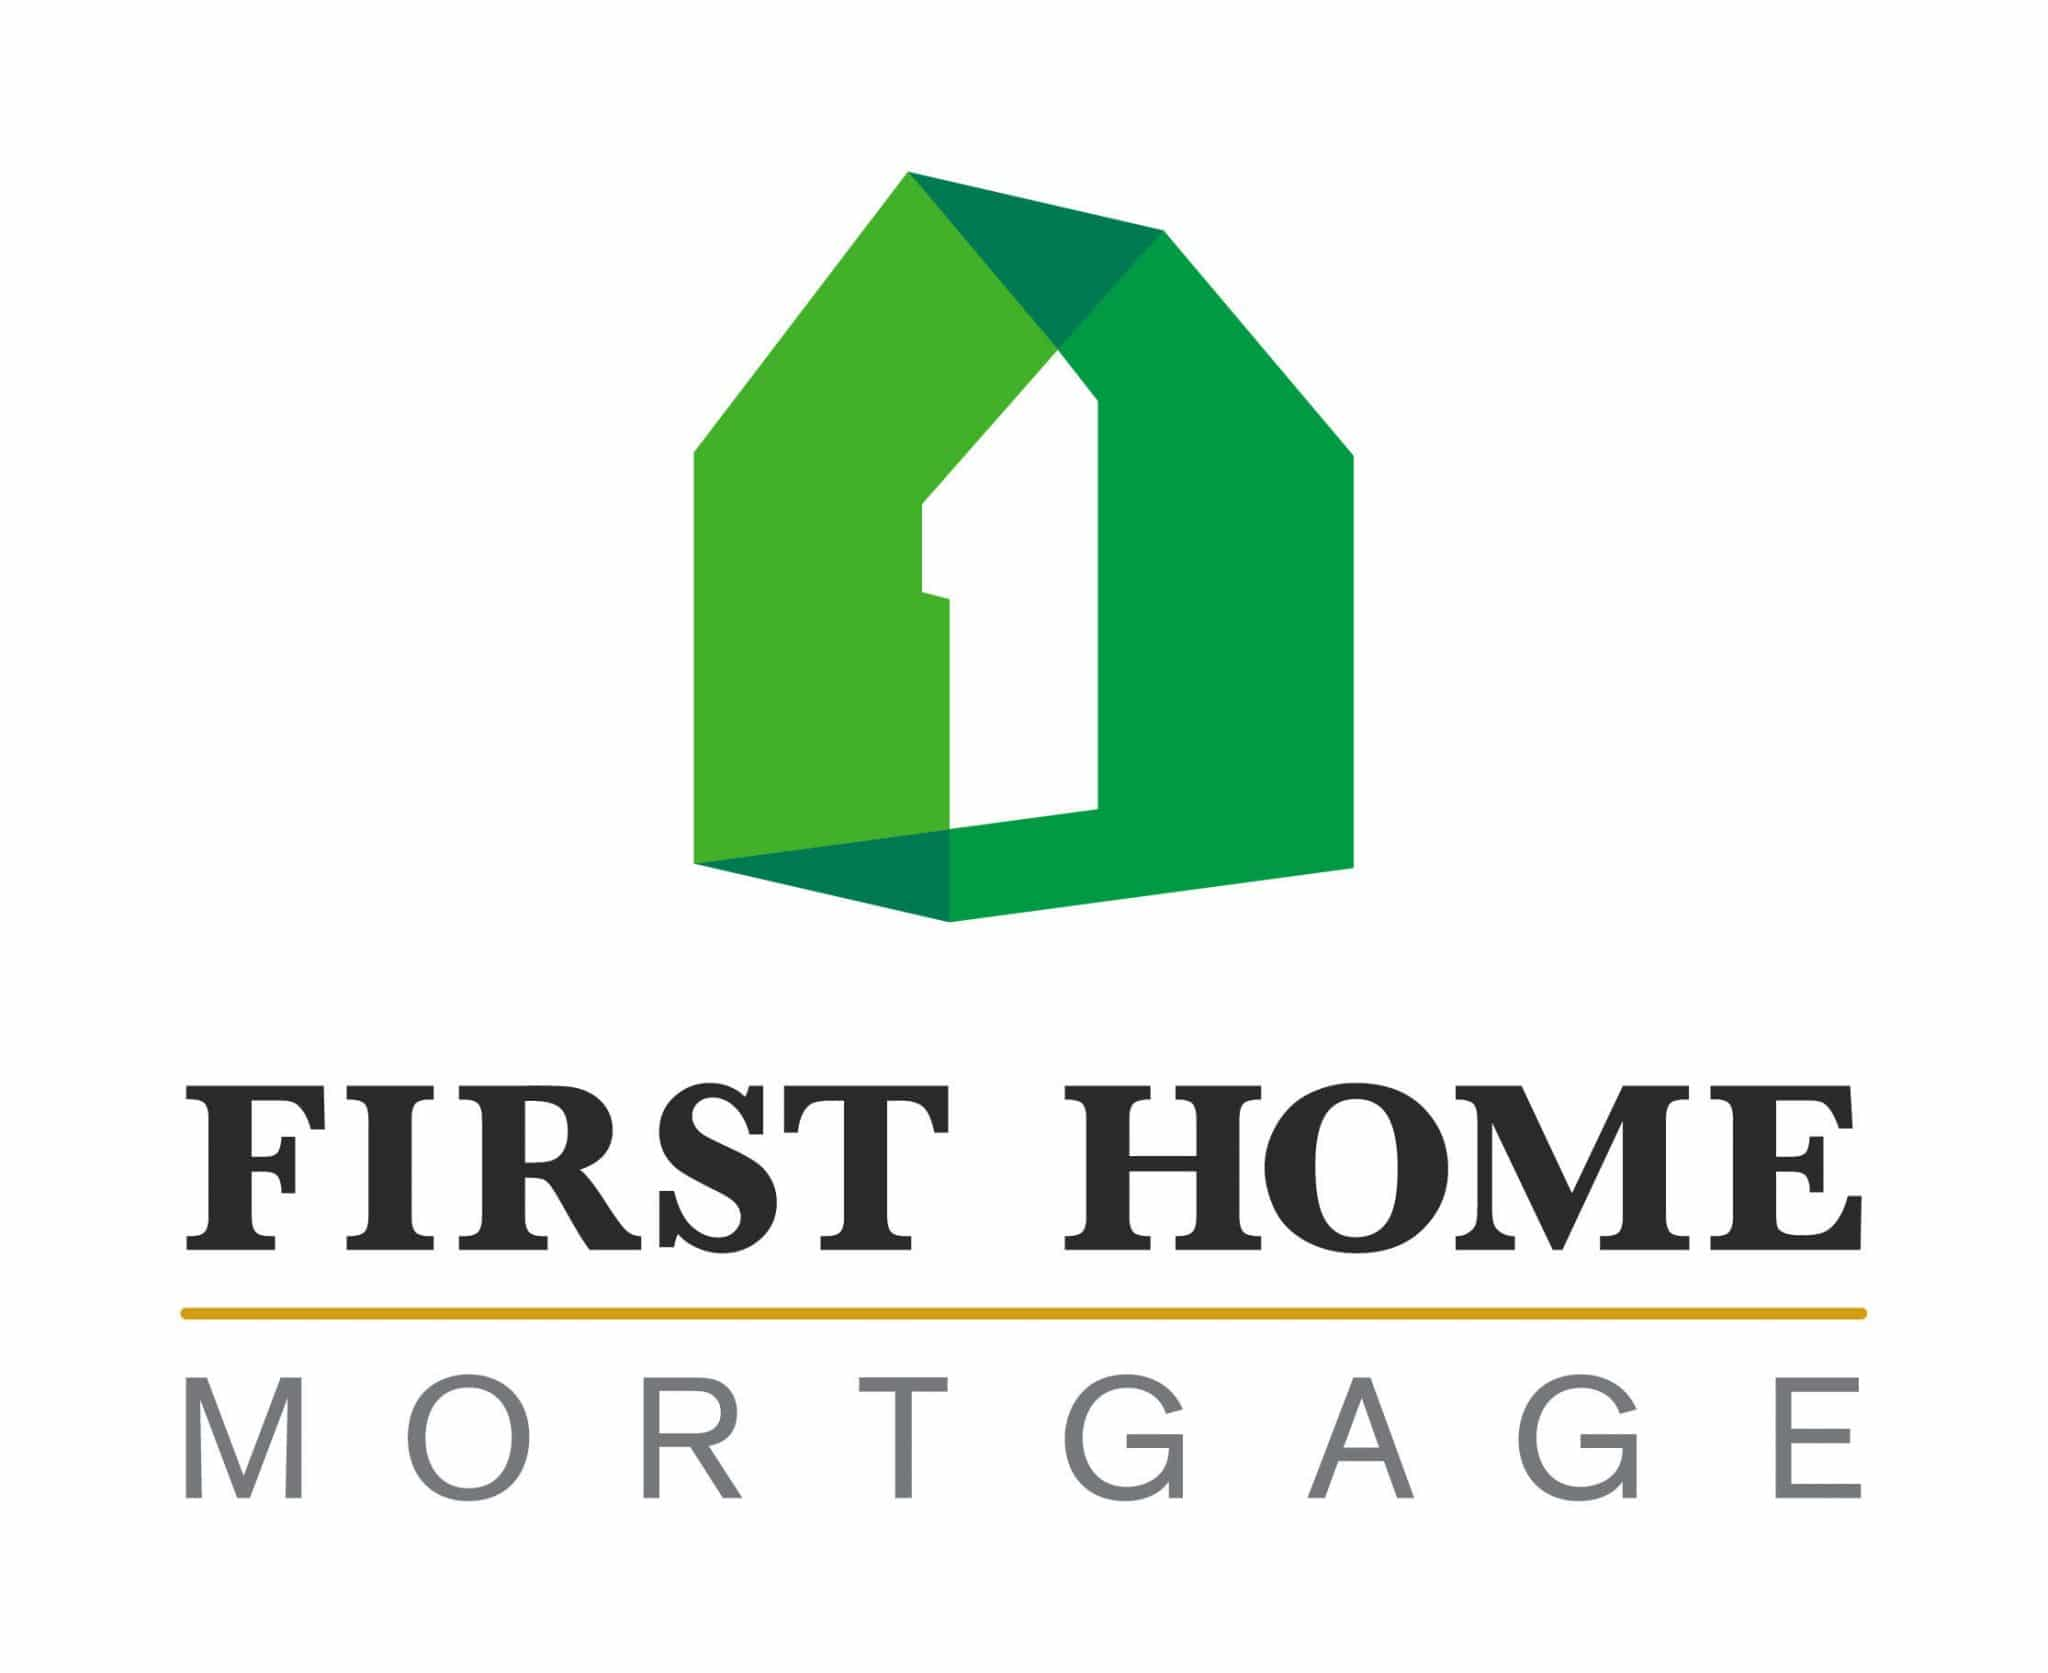 First Home Mortgage